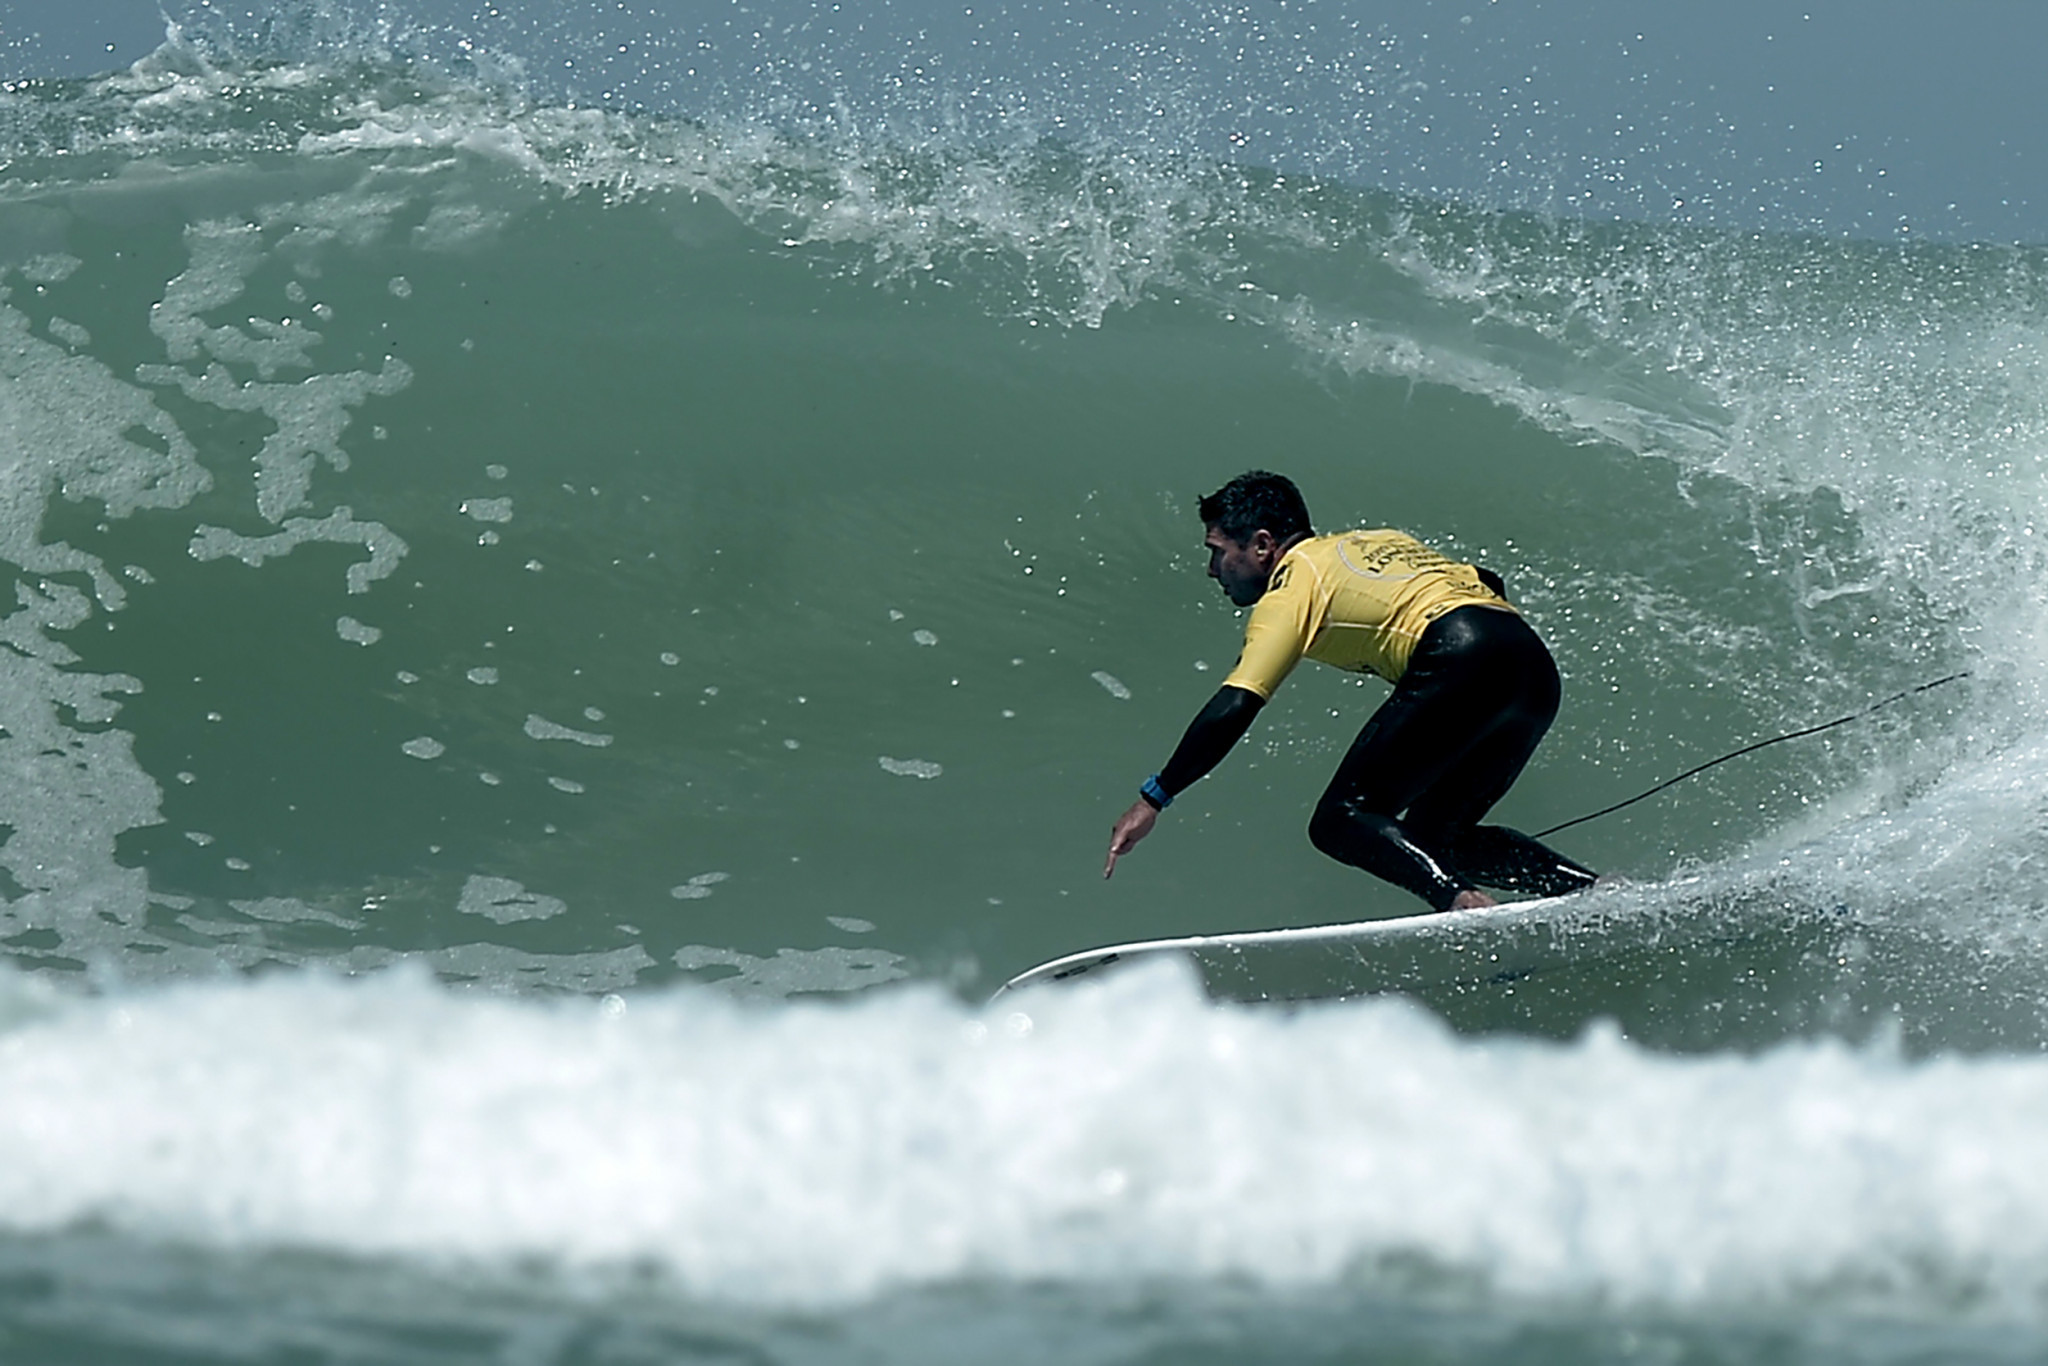 Surfing at 2024 Olympics to take place outside of Paris as artificial wave idea rejected